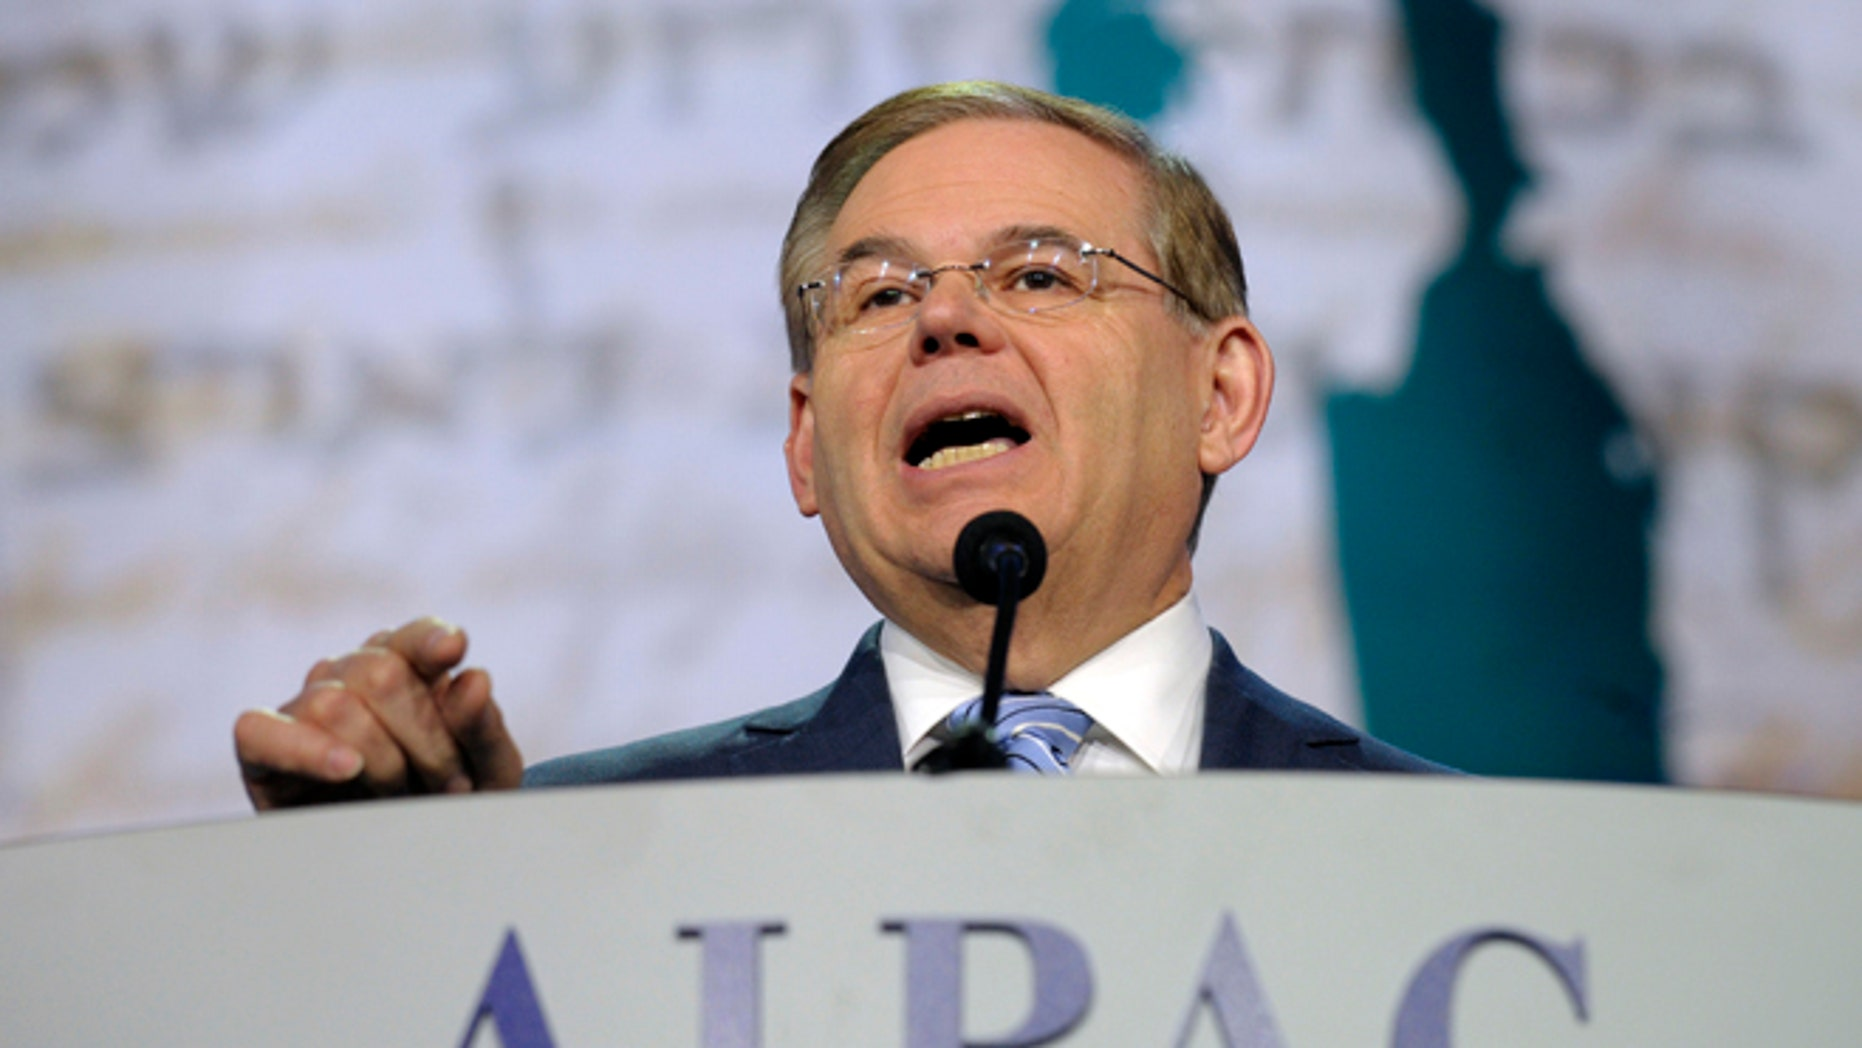 Senate Foreign Relations Committee Chairman Sen. Robert Menendez, D-N.J., addresses the American-Israeli Public Affairs Committee (AIPAC) 2013 Policy Conference at the Walter E. Washington Convention Center in Washington, Tuesday, March 5, 2013. Menendez, who has maintained that he never paid prostitutes for sex, said he is looking forward to whatever evidence emerges from courts in the Dominican Republic to vindicate him.  (AP Photo/Susan Walsh)